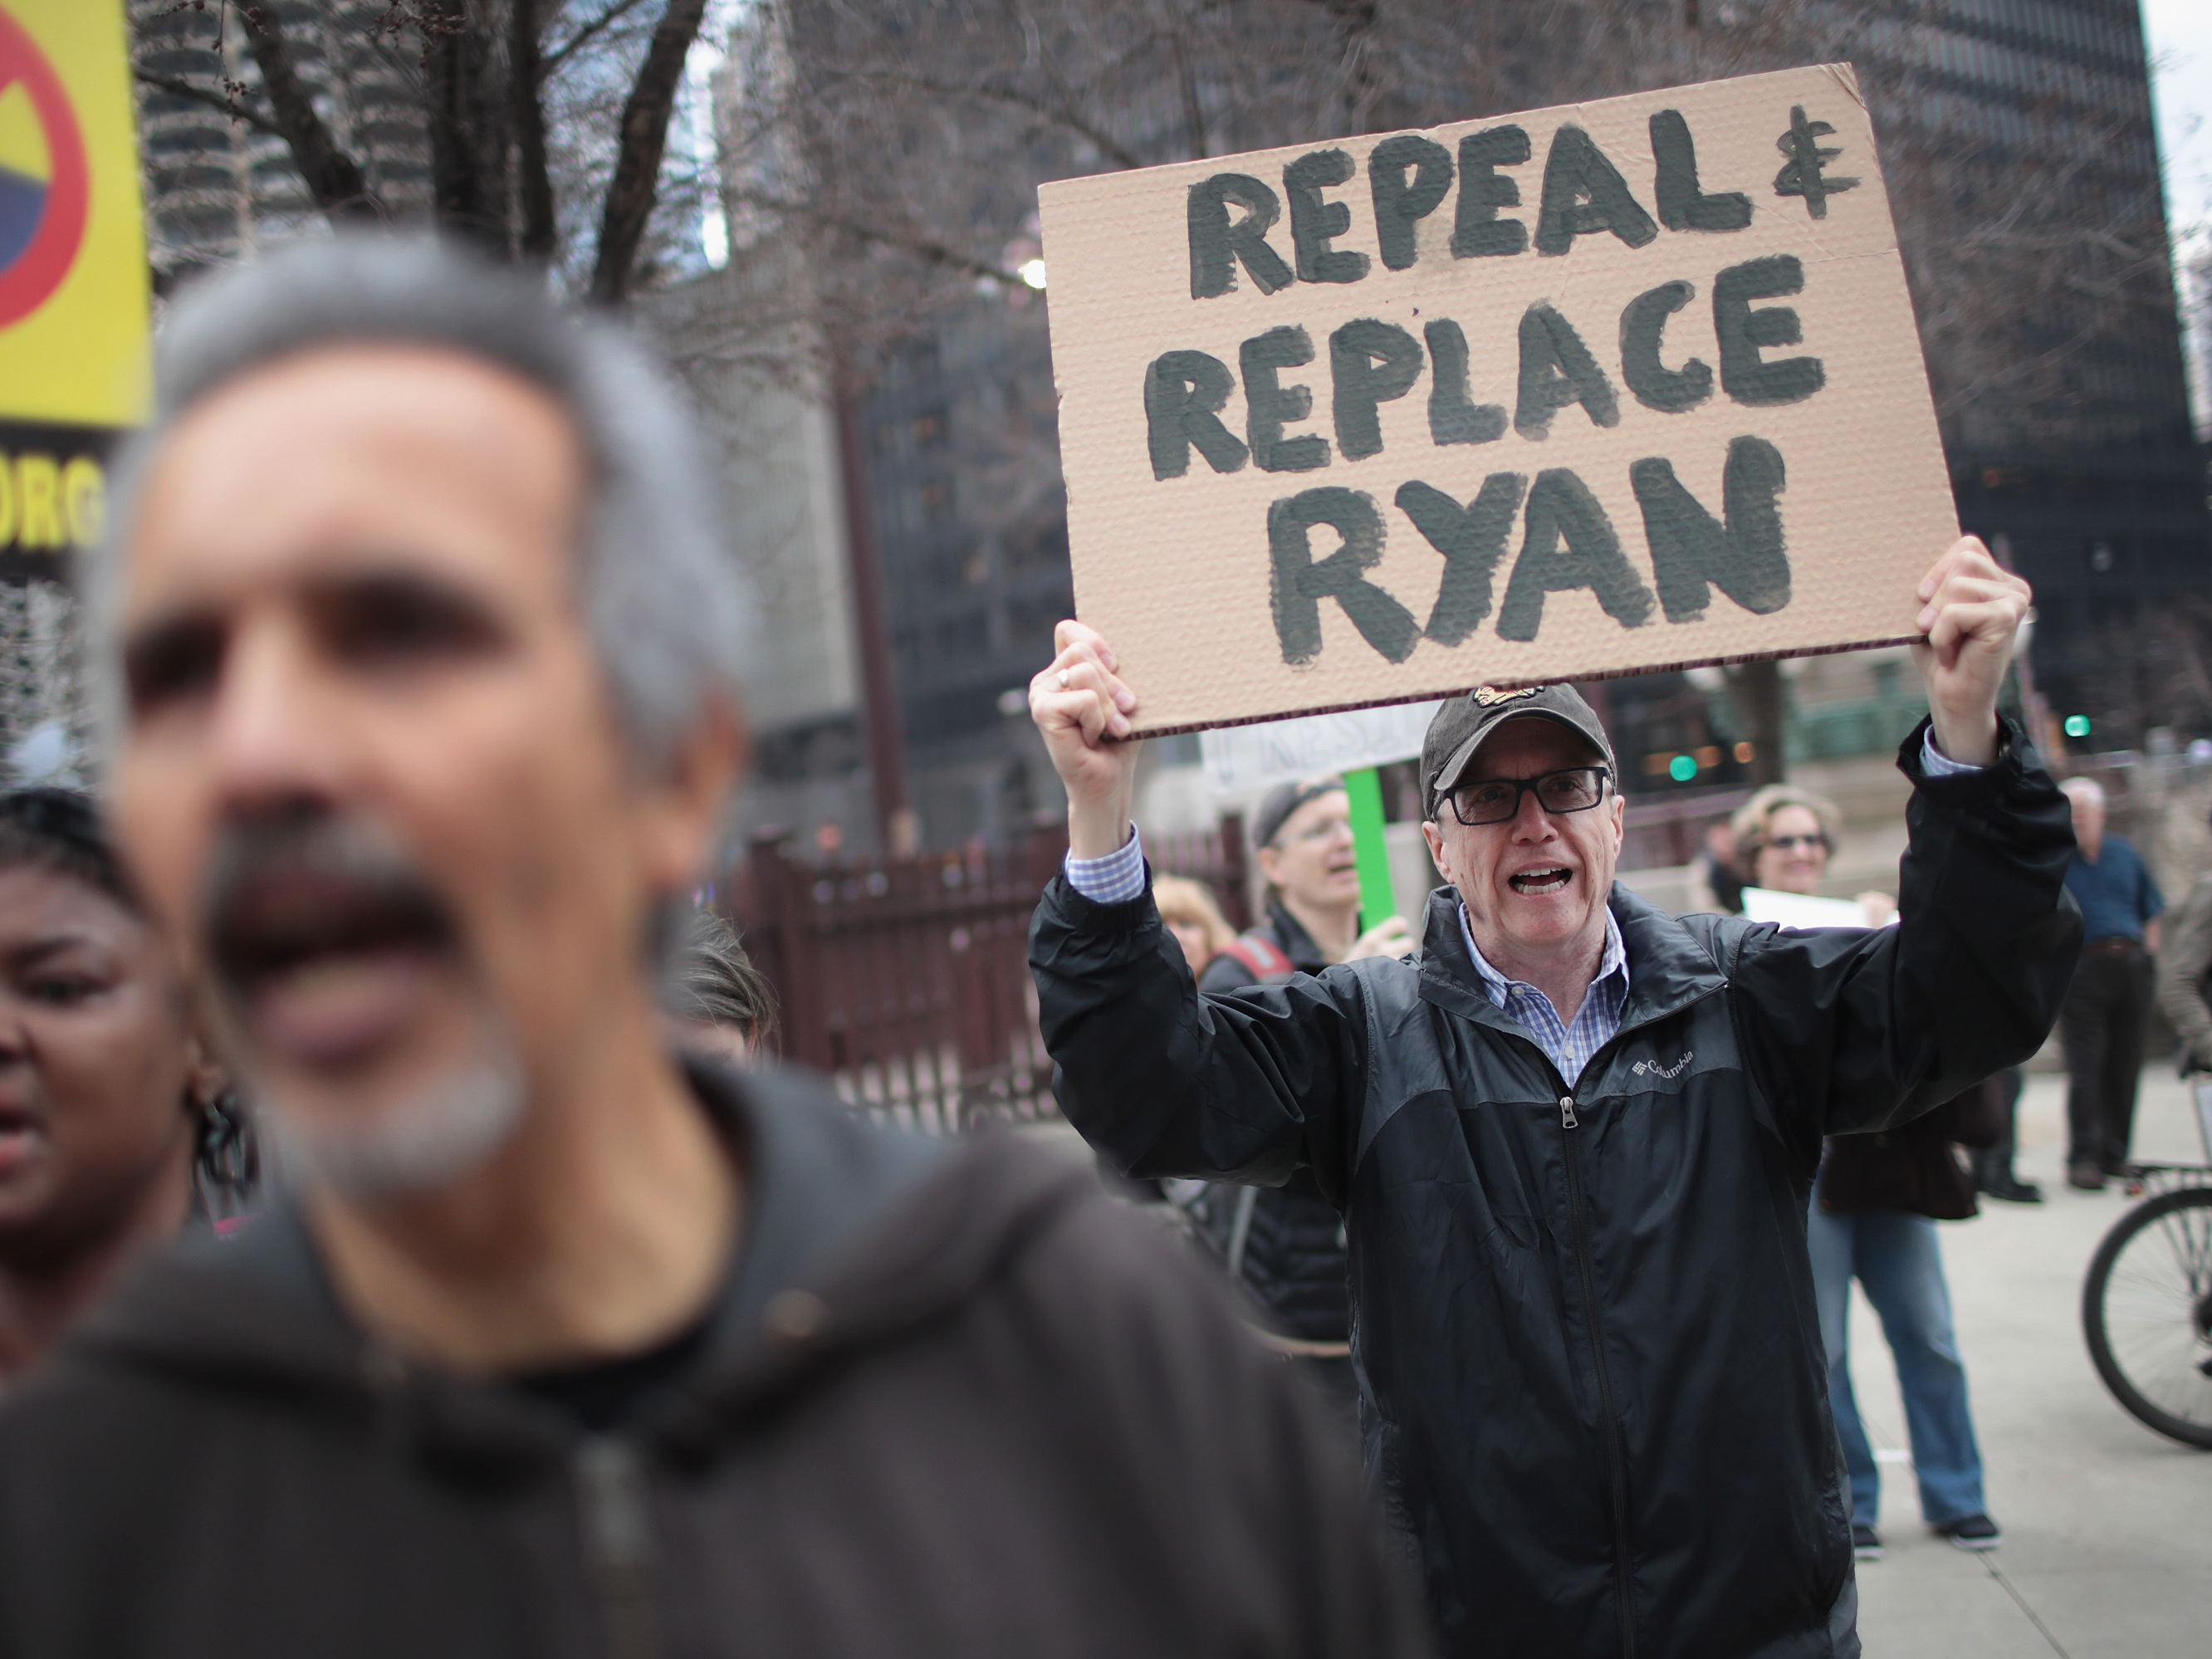 Demonstrators gather near Trump Tower after the defeat of the GOP health care plan. One man holds up a sign, urging the ouster of House Speaker Paul Ryan, who spearheaded the failed effort. (Scott Olson/Getty Images)